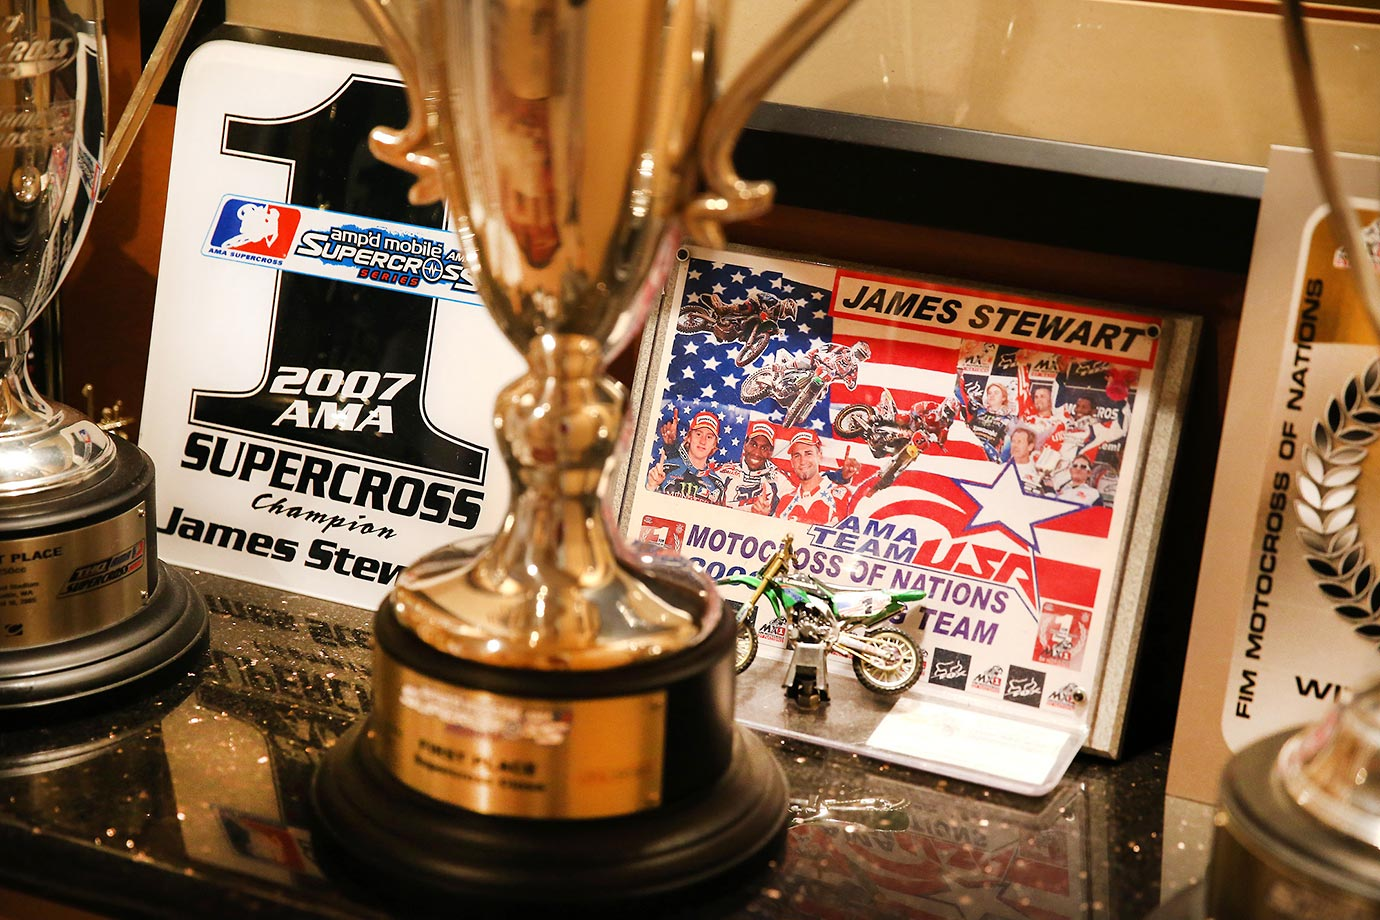 Some of the many Supercross trophies, awards, and racing memorabilia at James Stewart's home.